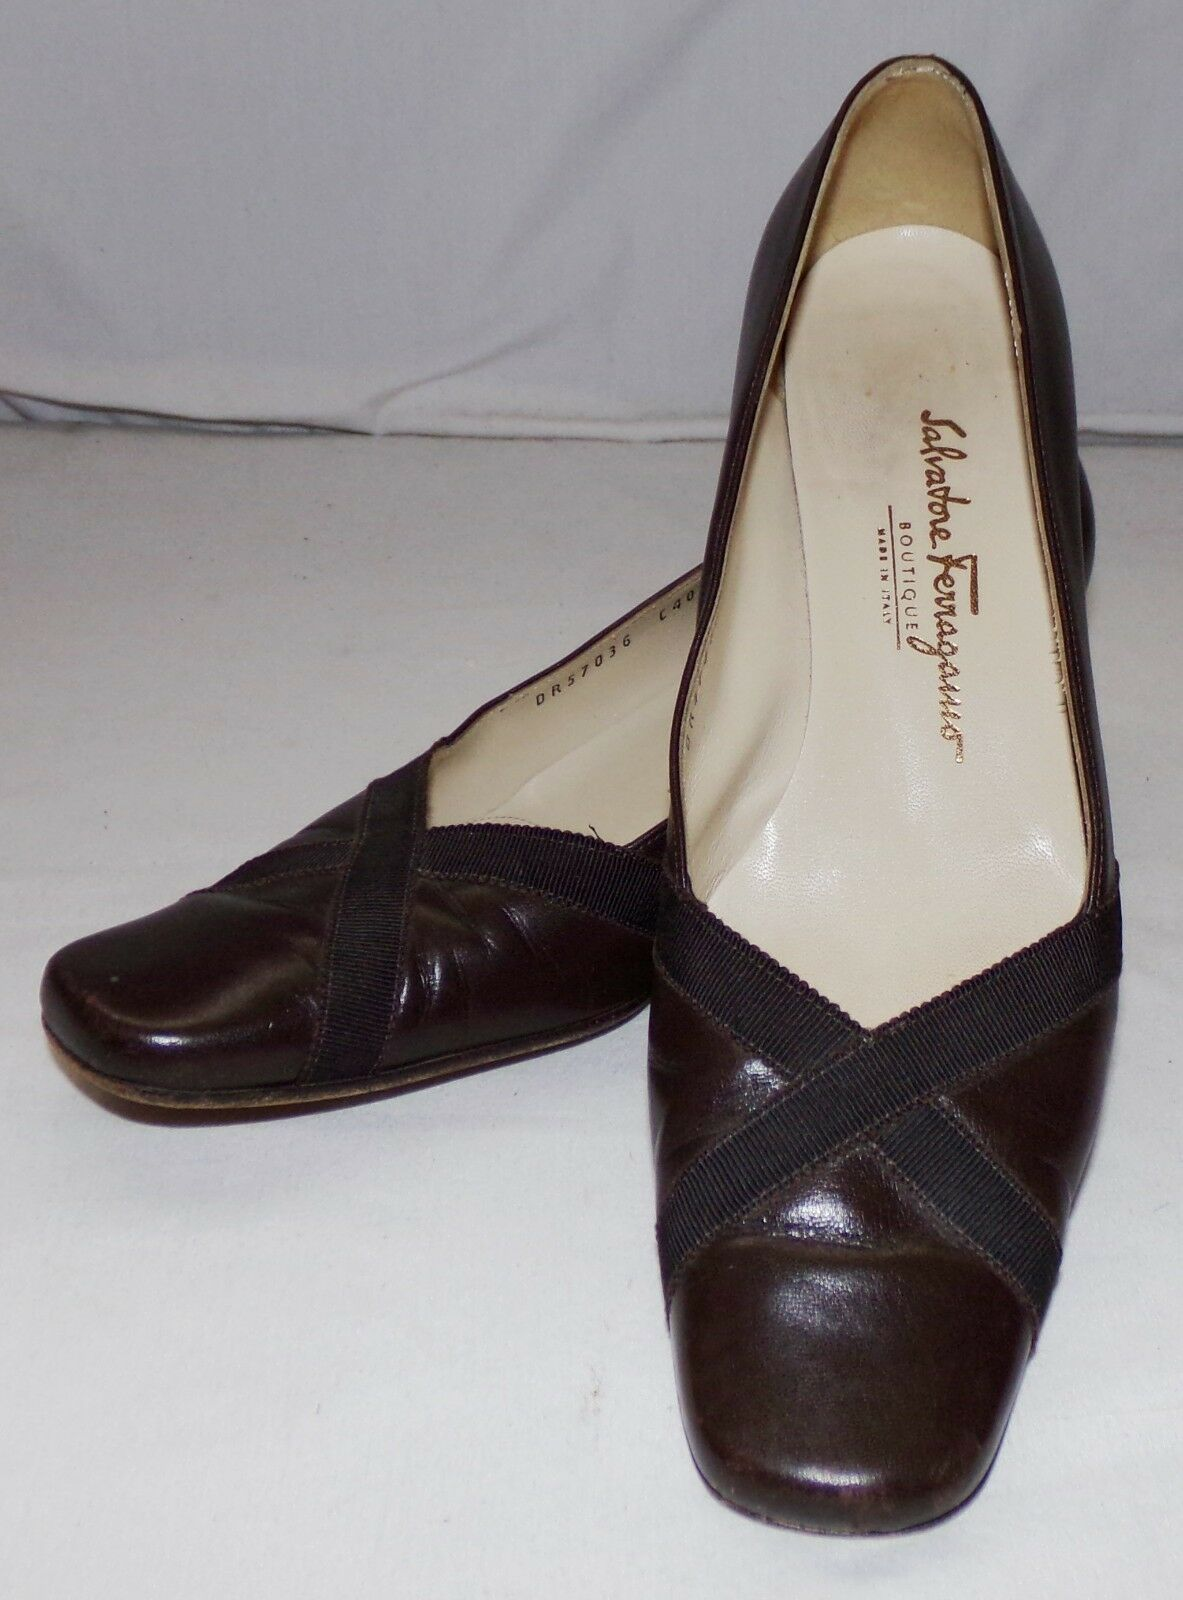 Salvatore Ferragamo Boutique Pumps Heels Womens 7 1/2 B Brown